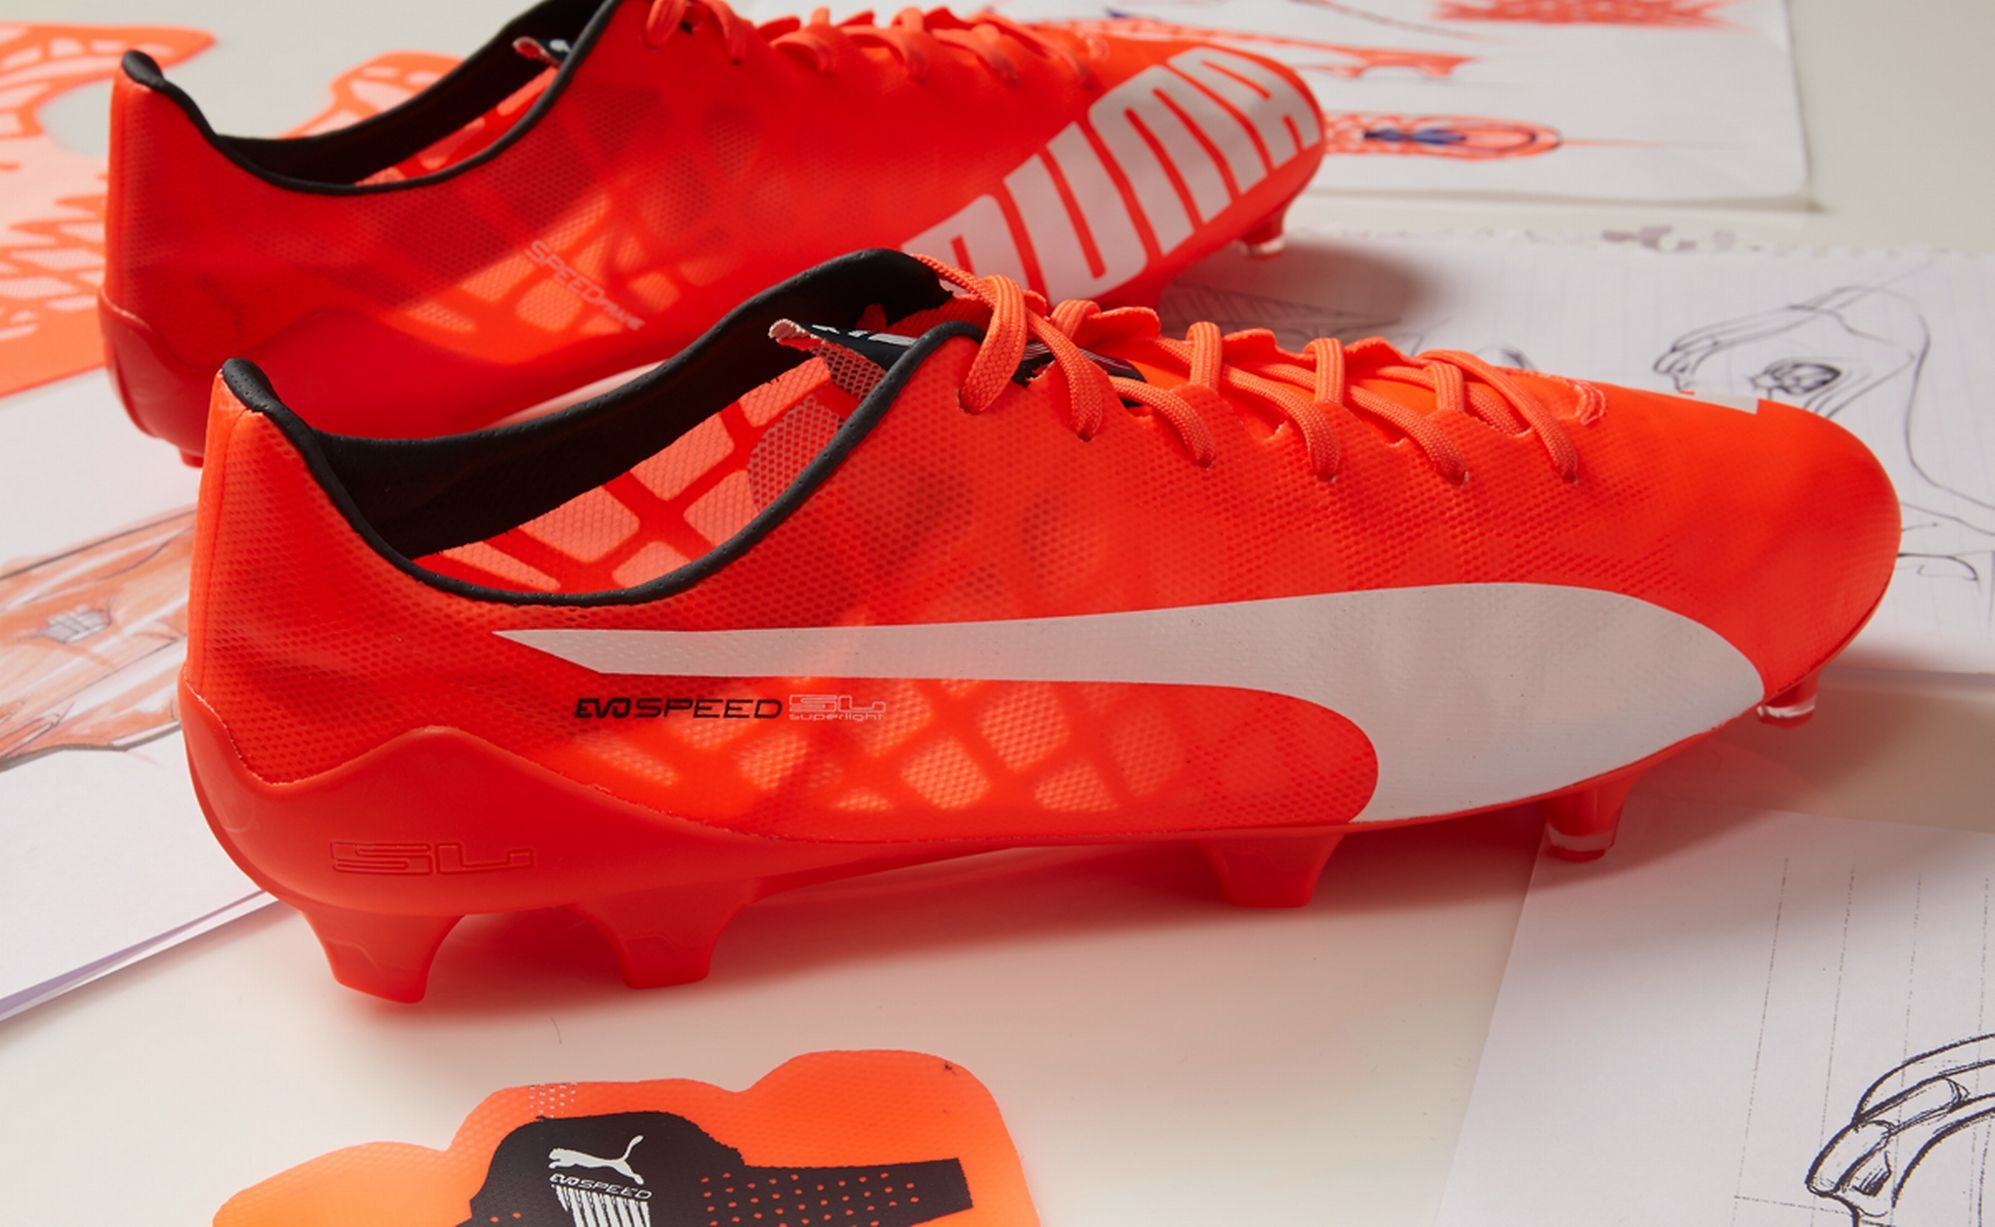 e530834a8 Sergio Aguero, Radamel Falcao and Marco Reus launch new 'evoSPEED SL ...